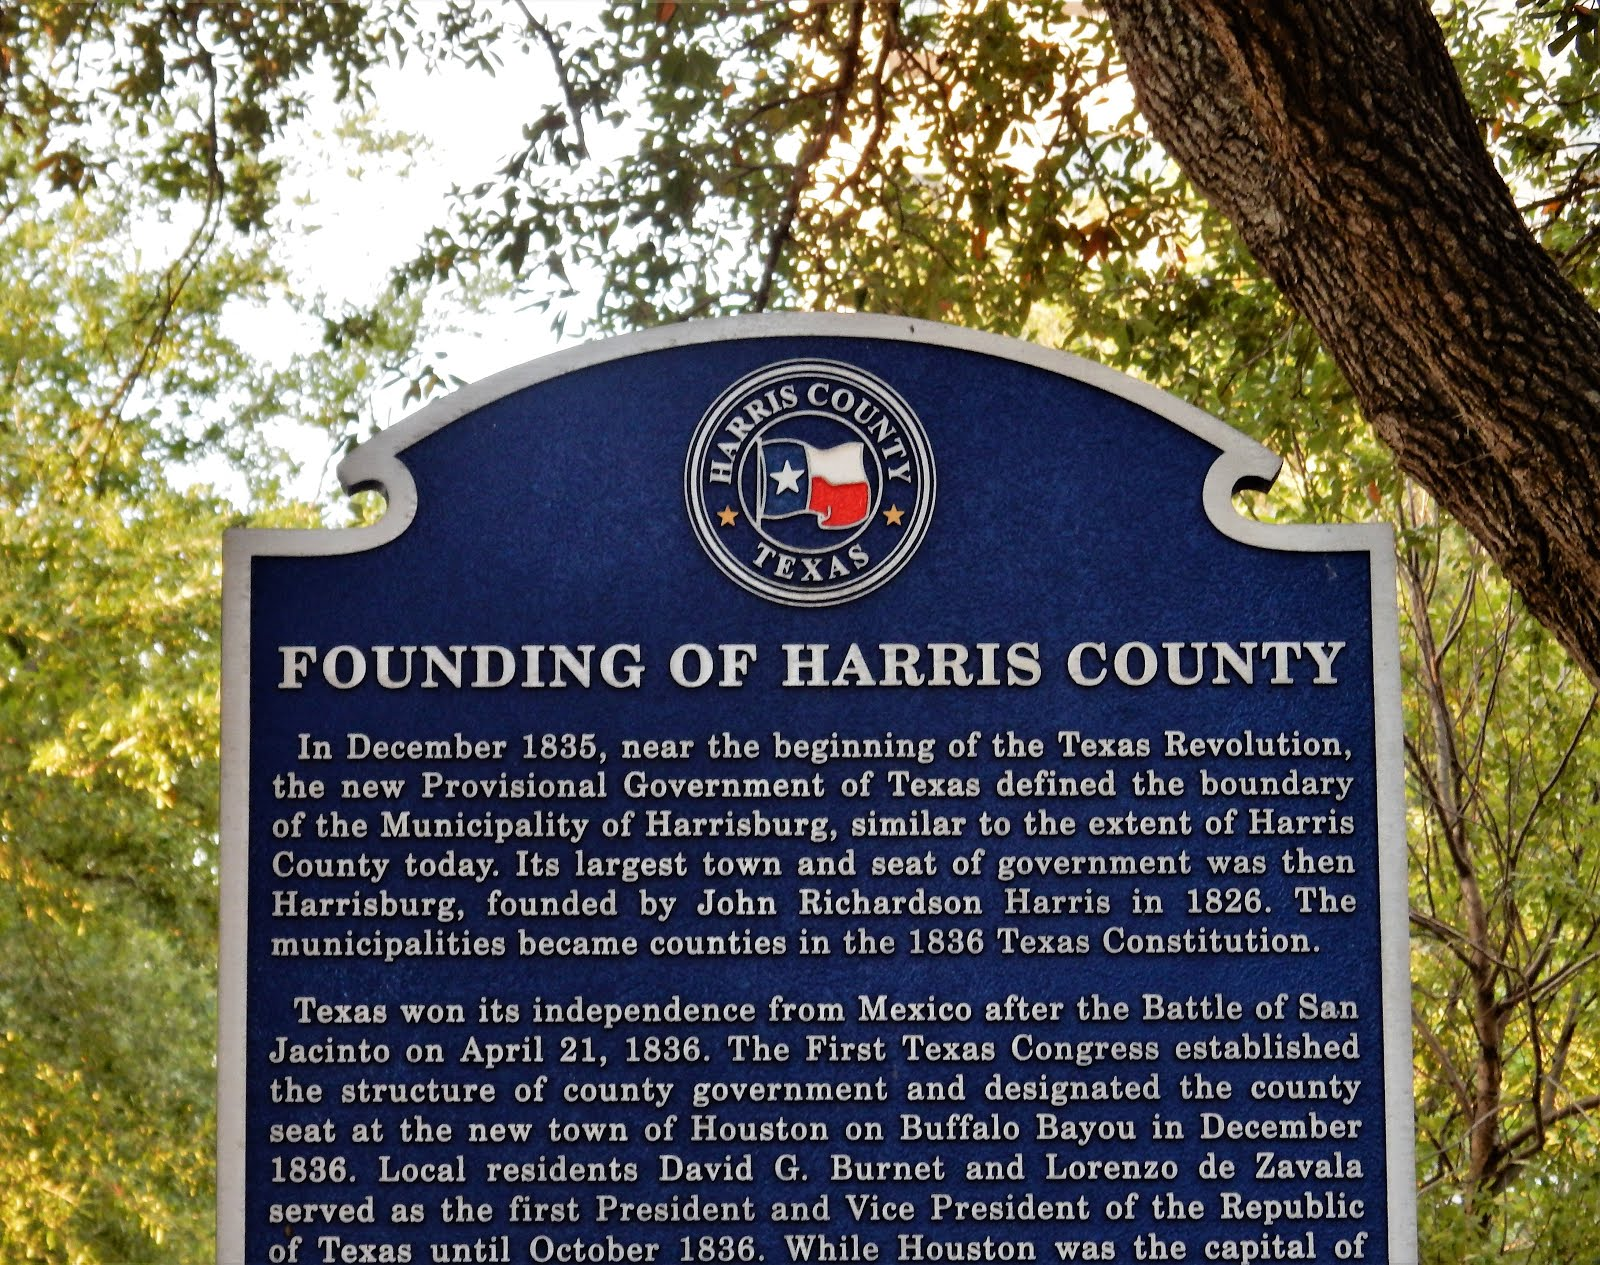 The Founding of Harris County